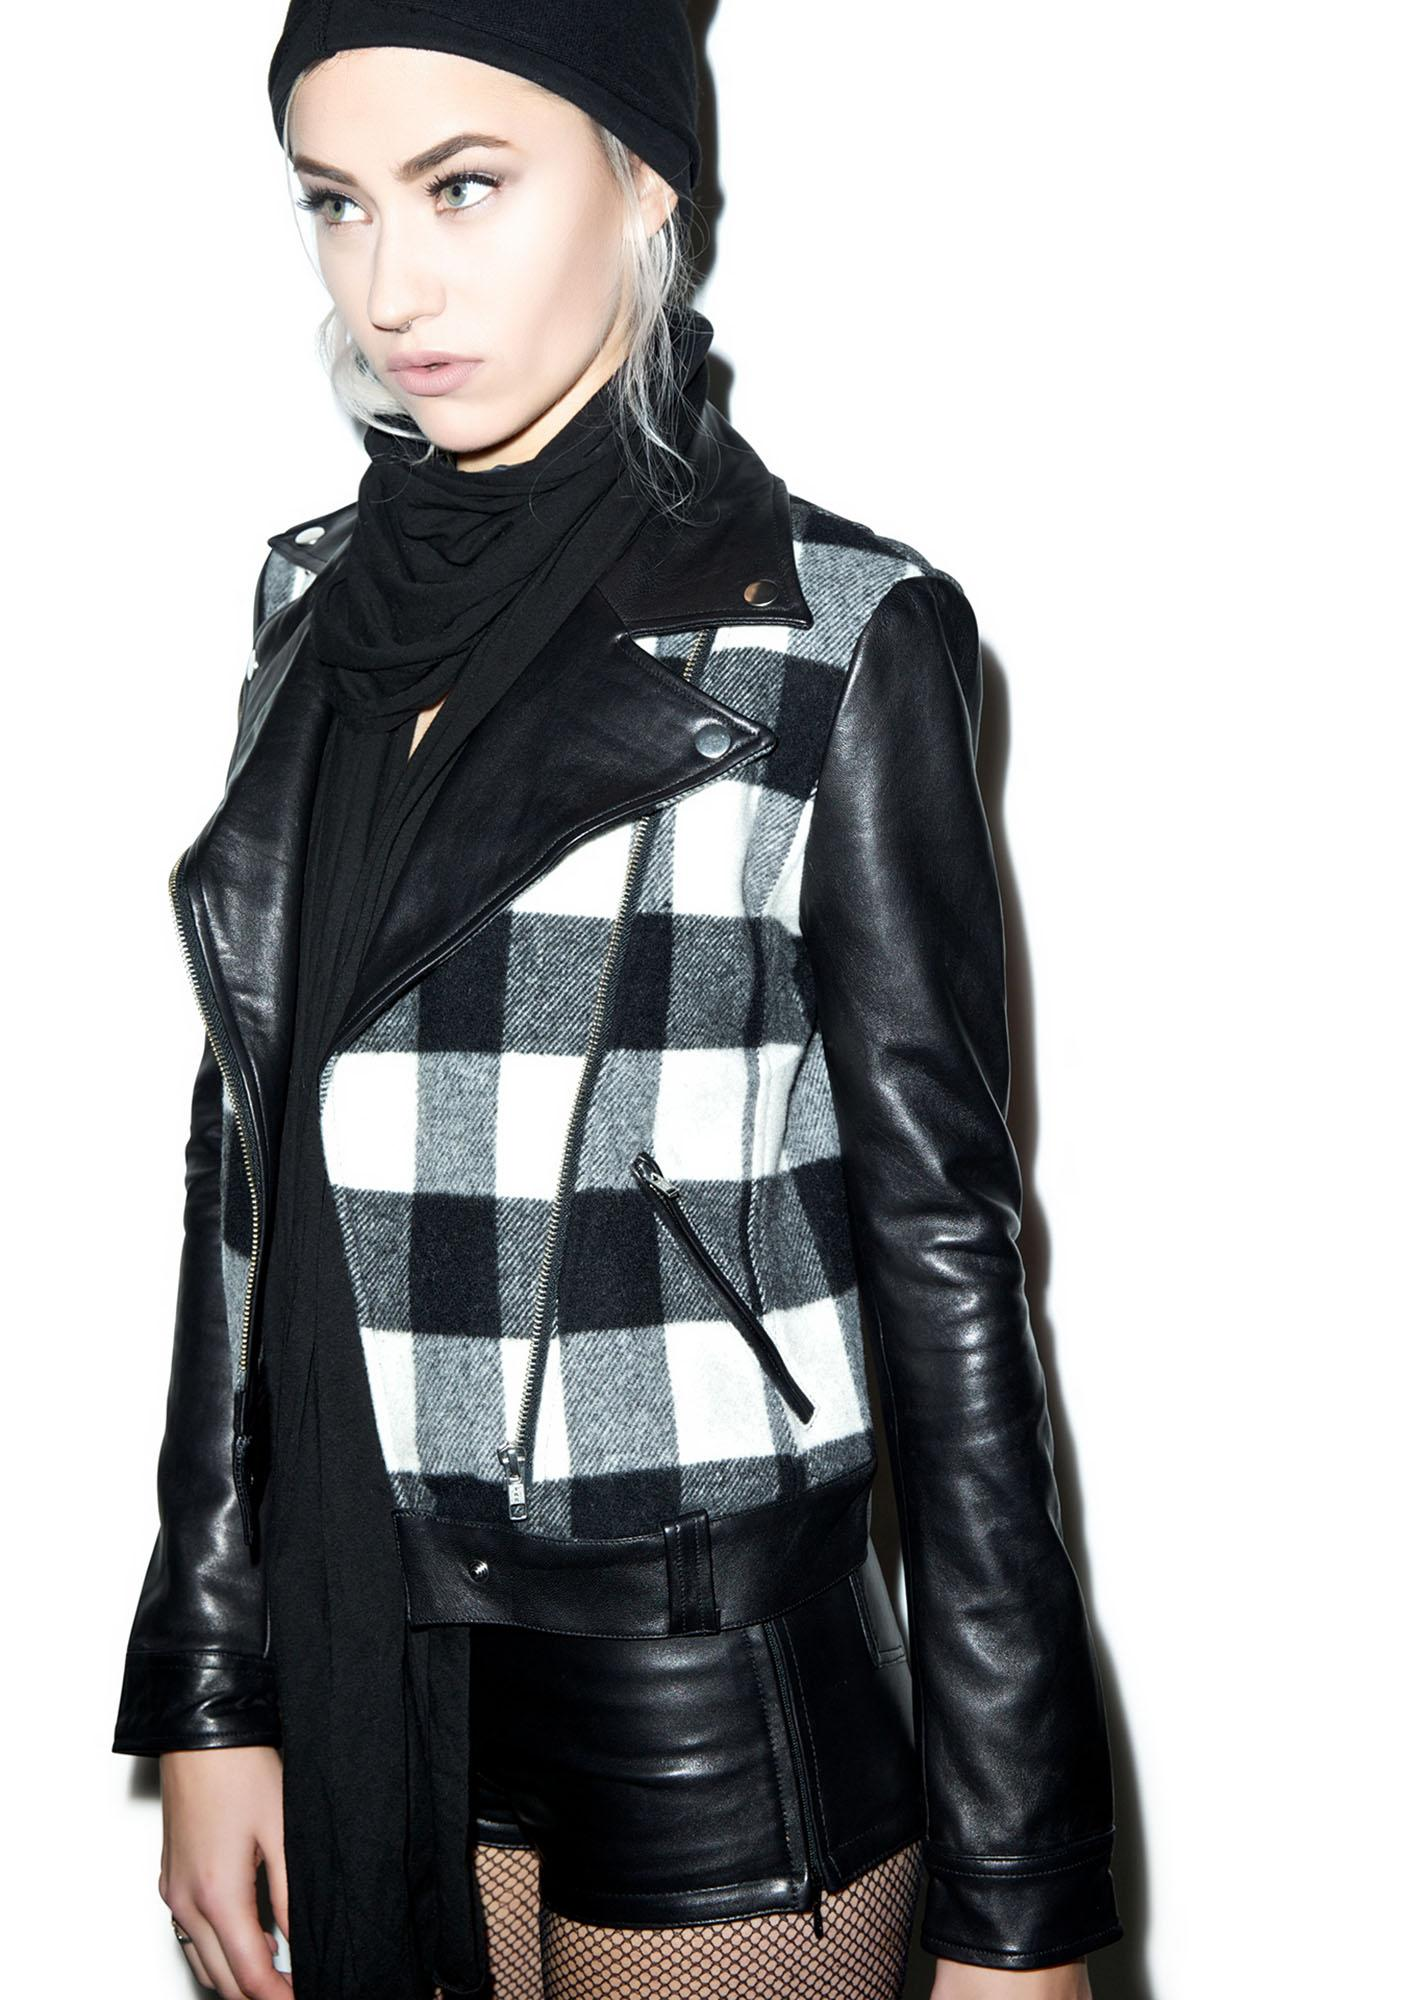 Black Scale Outlaw Jacket